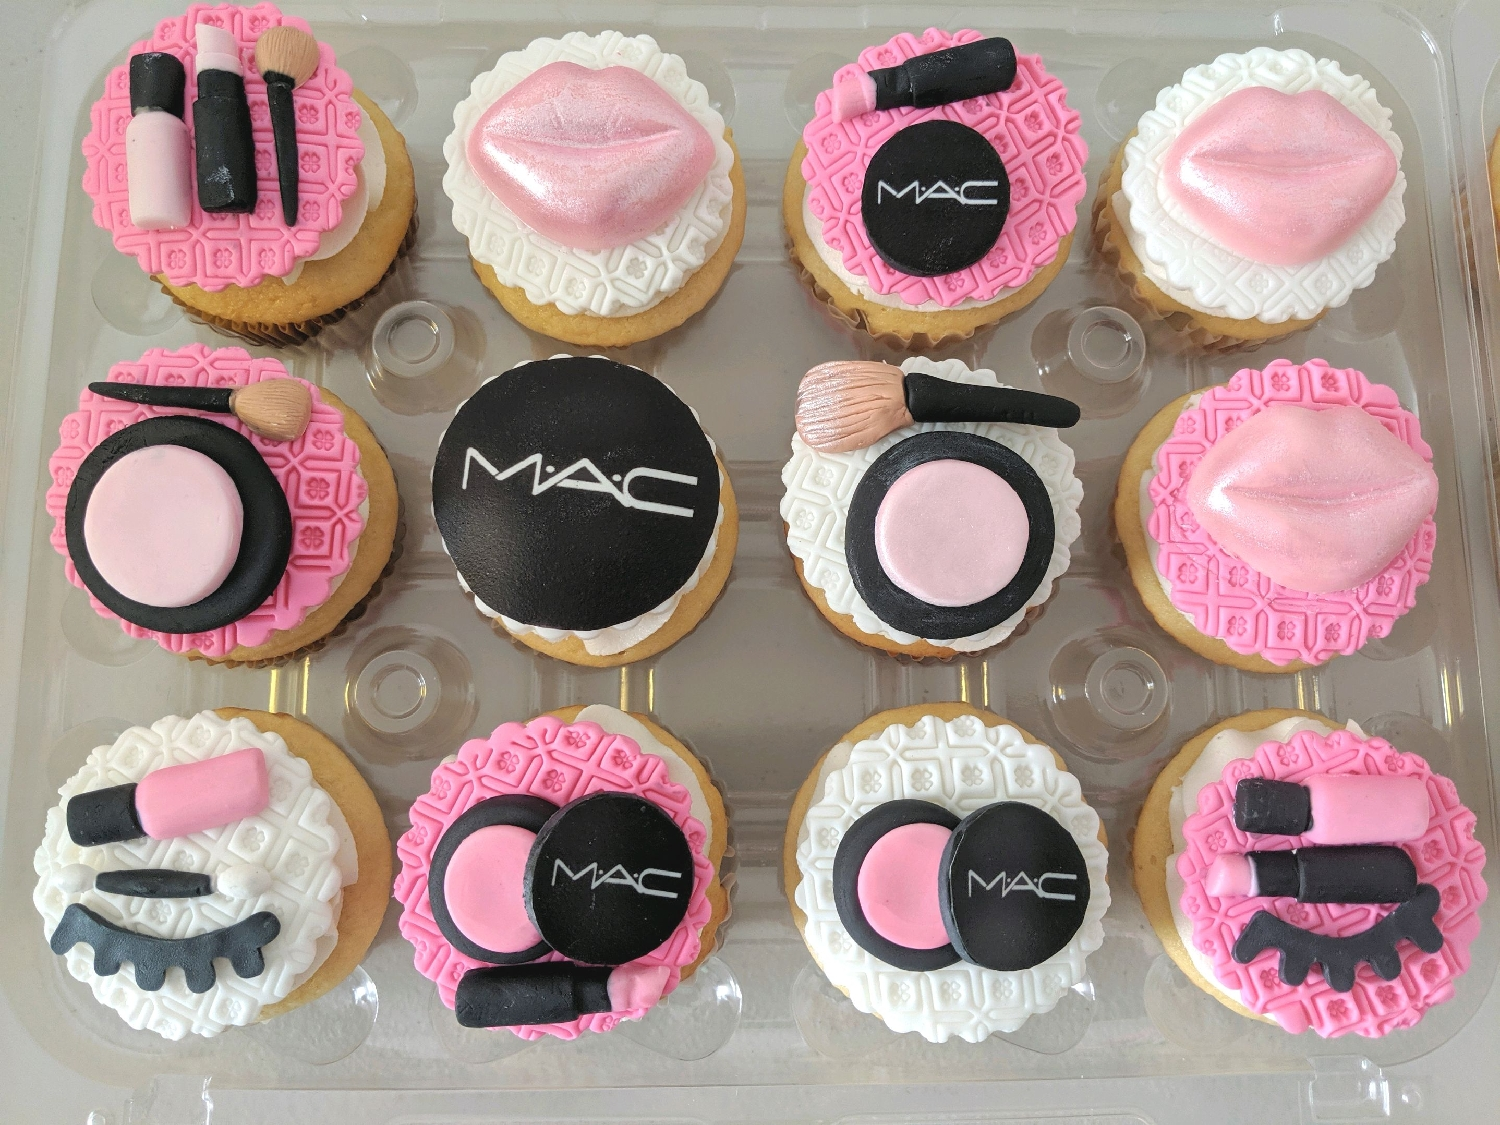 M.A.C. Cupcakes